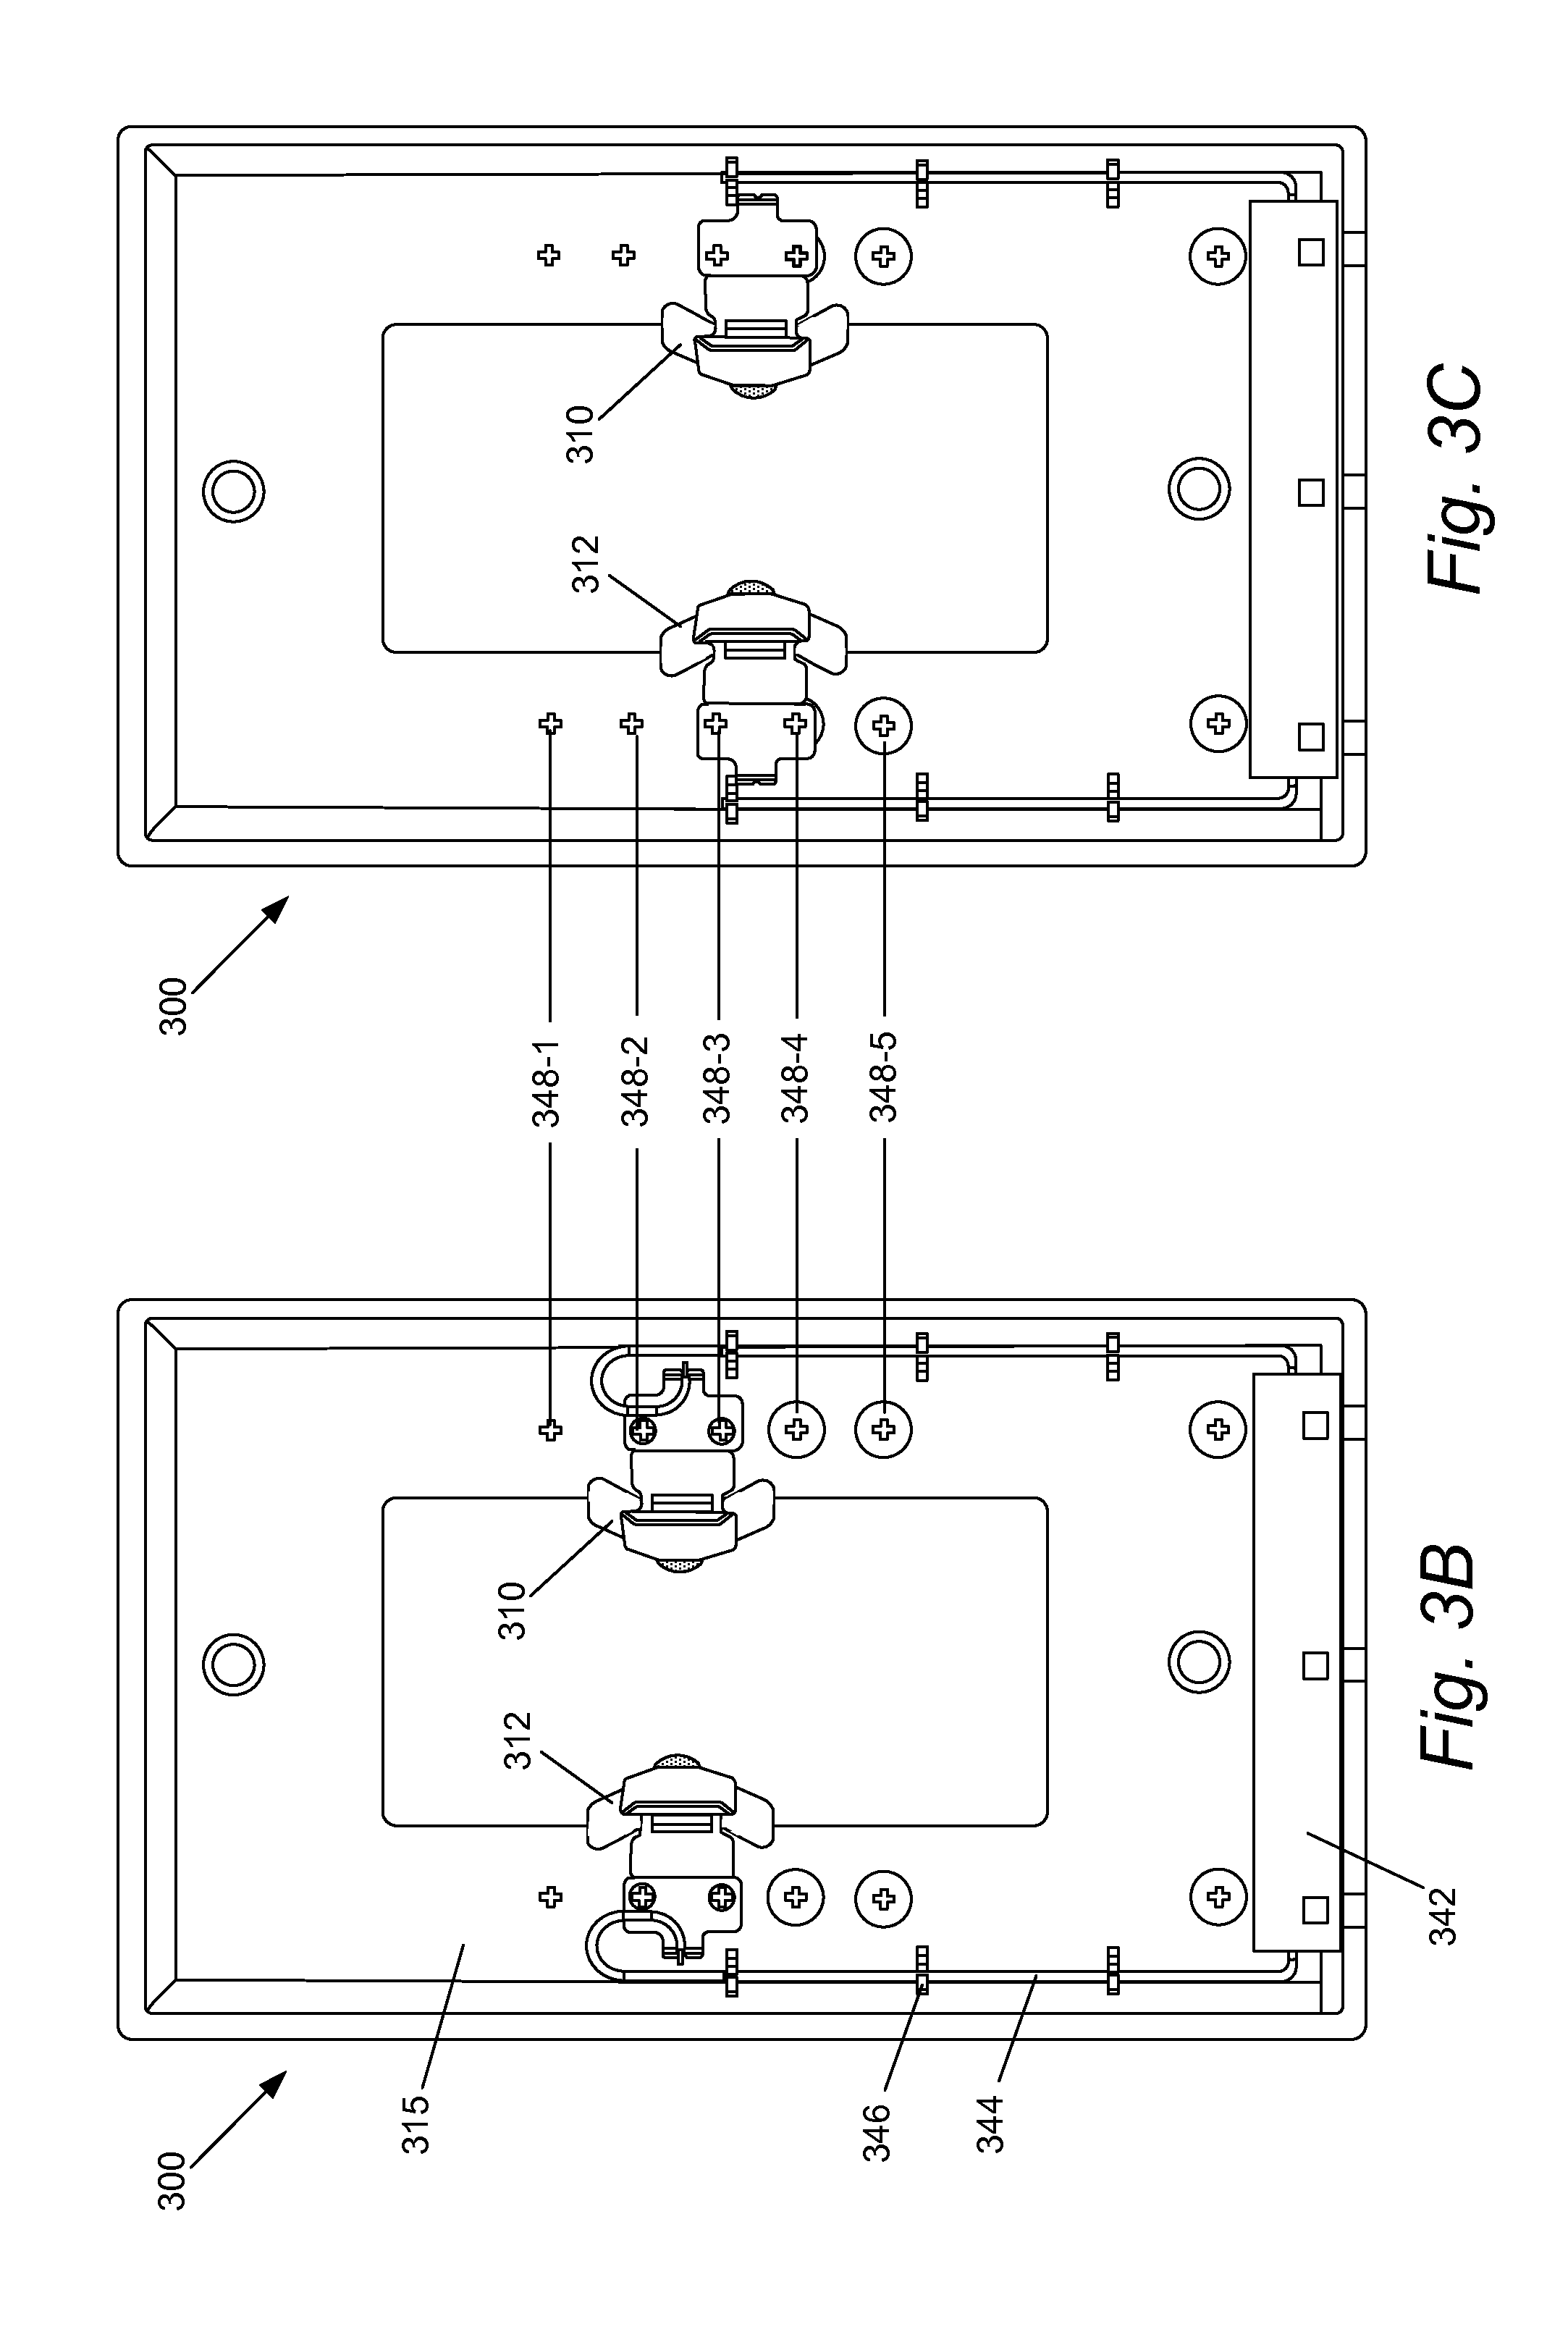 Patent Us 9362728 B2 Array Connected To Port 1 Interrupter 3